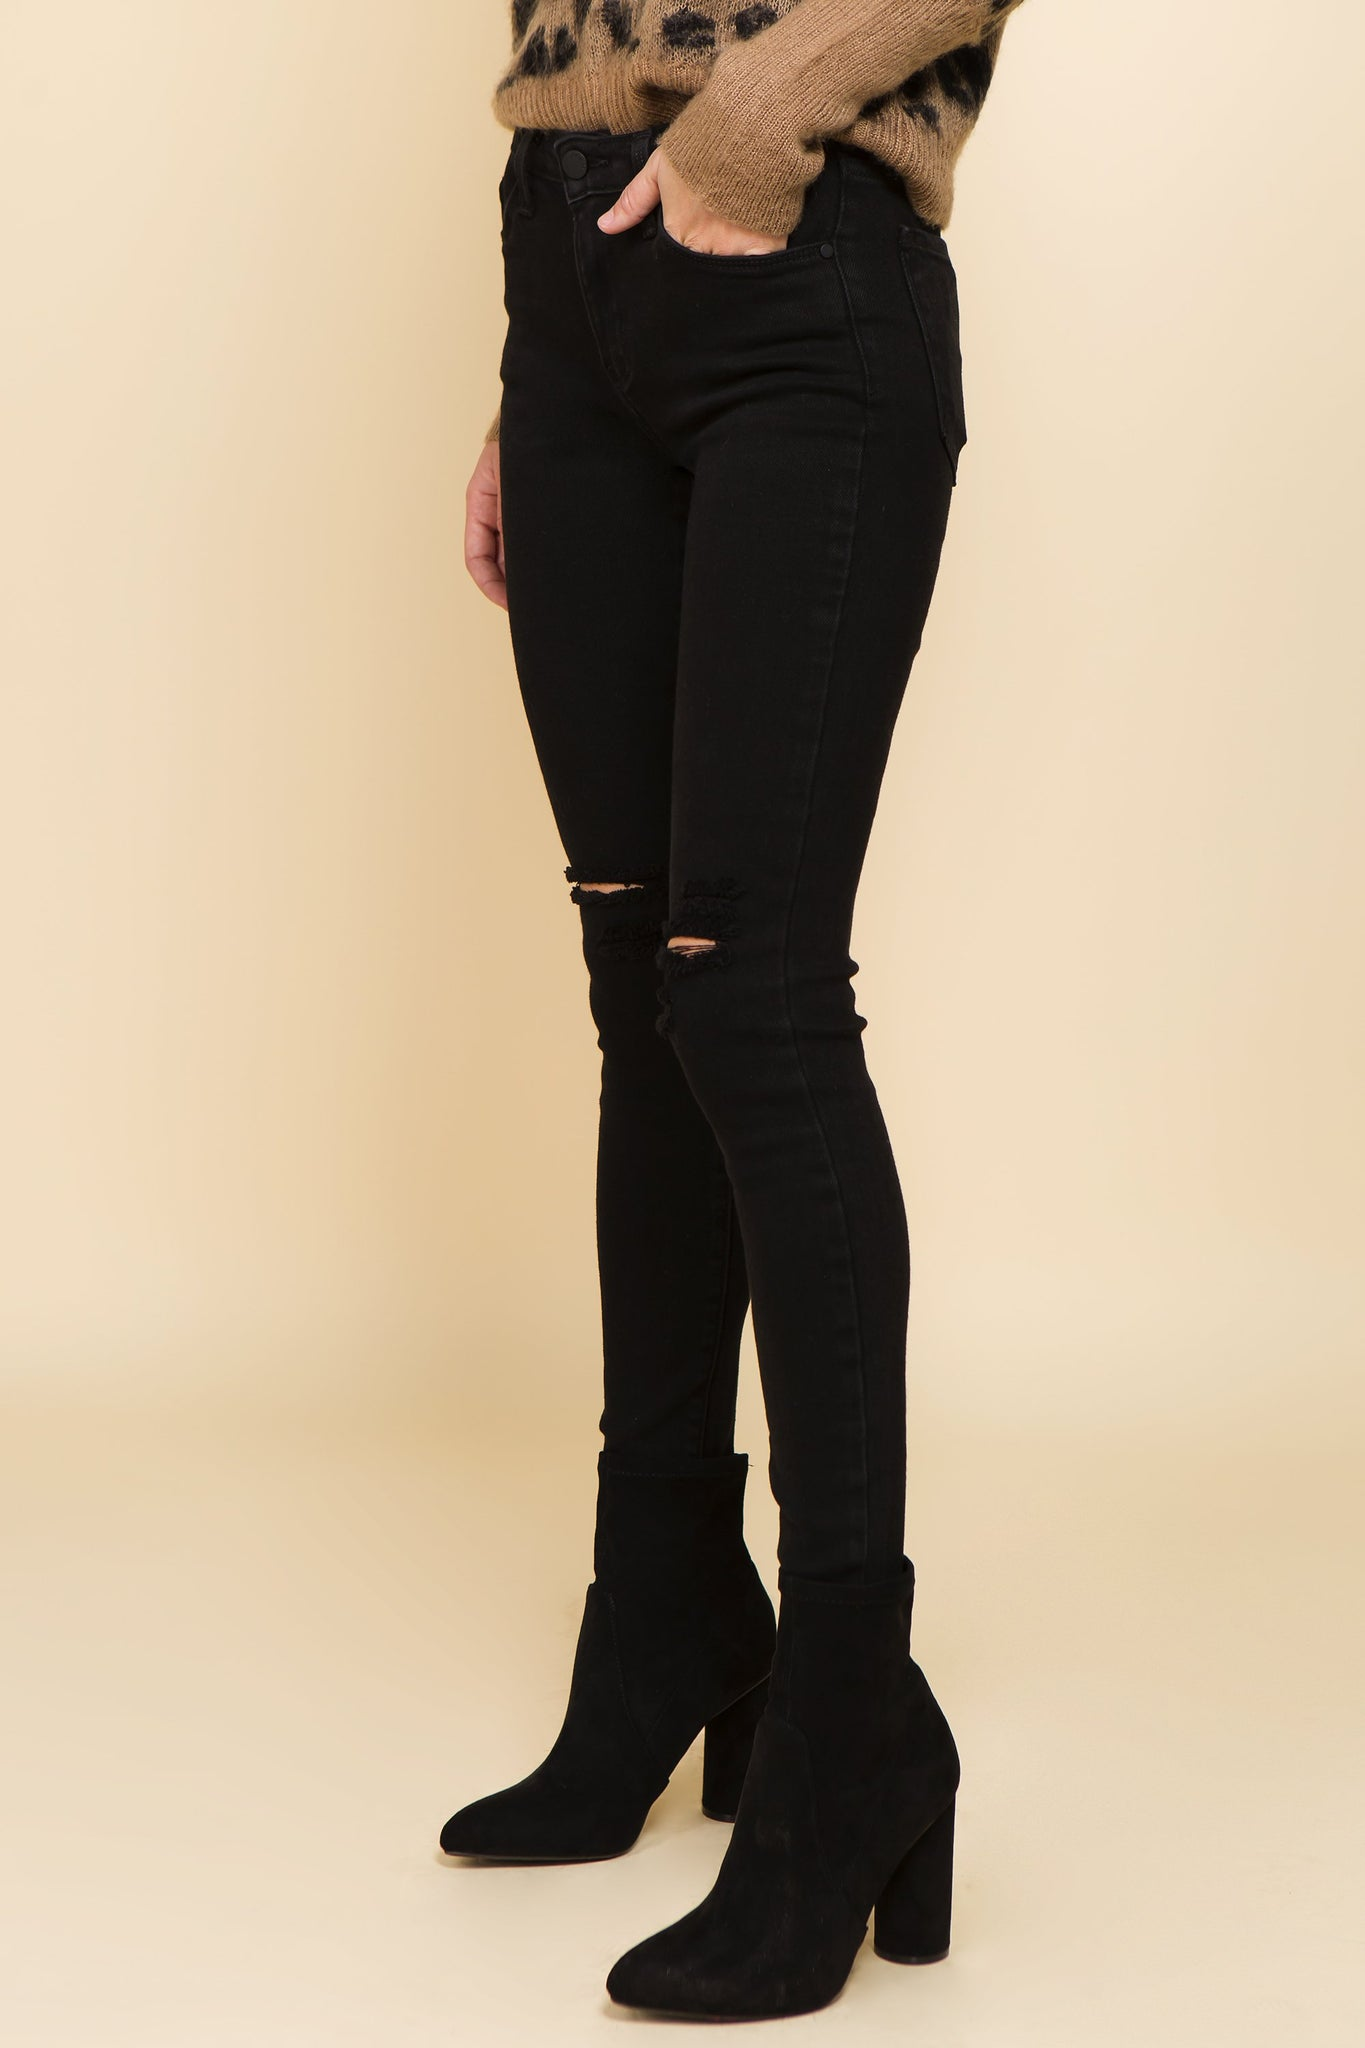 Highwaisted distressed black denim with unfinished hemline